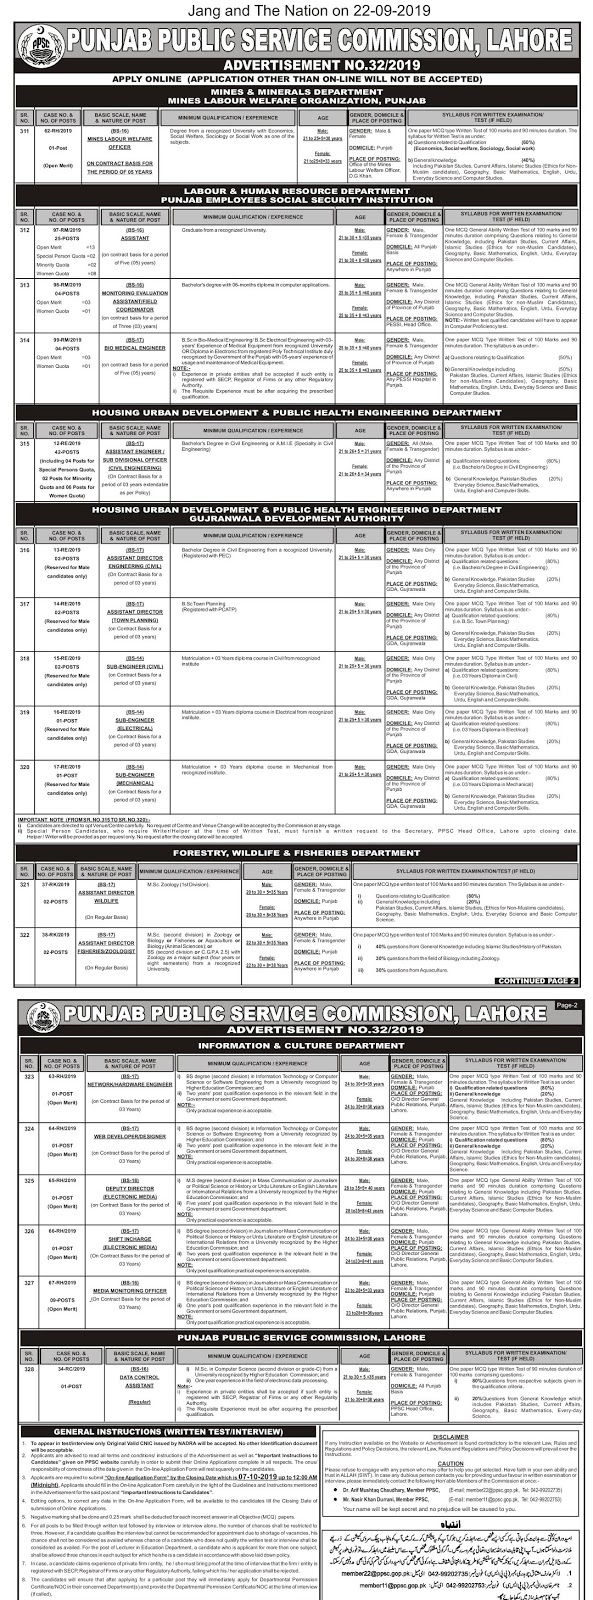 ppsc jobs online apply , ad no 32 ppsc jobs, jobs in ppsc